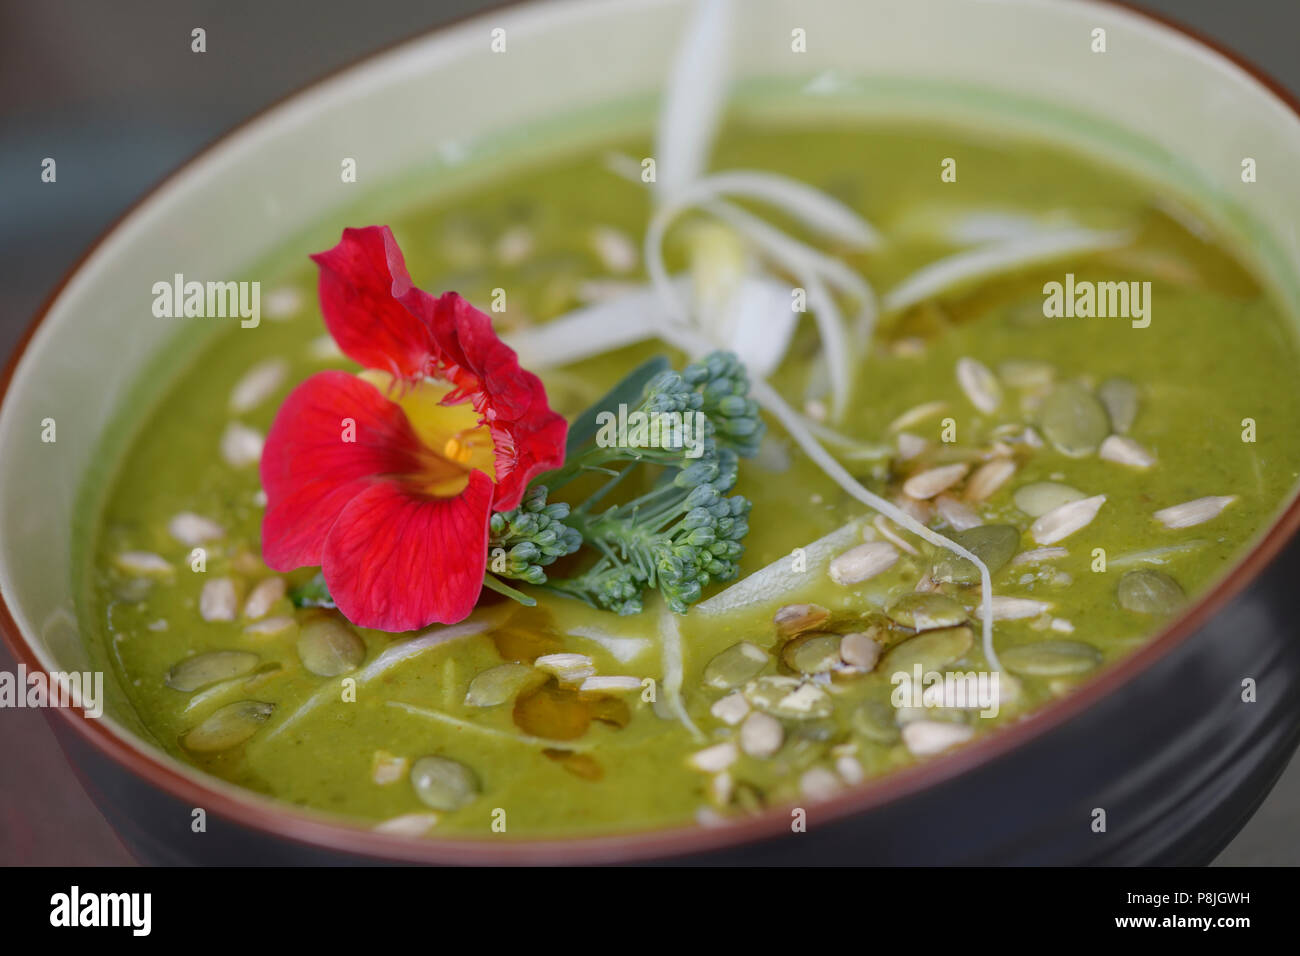 A bowl of healthy Green Goddess home-made soup made of freshly pureed organic greens and vegetables decorated with Nasturtium and pumpkin seeds Stock Photo